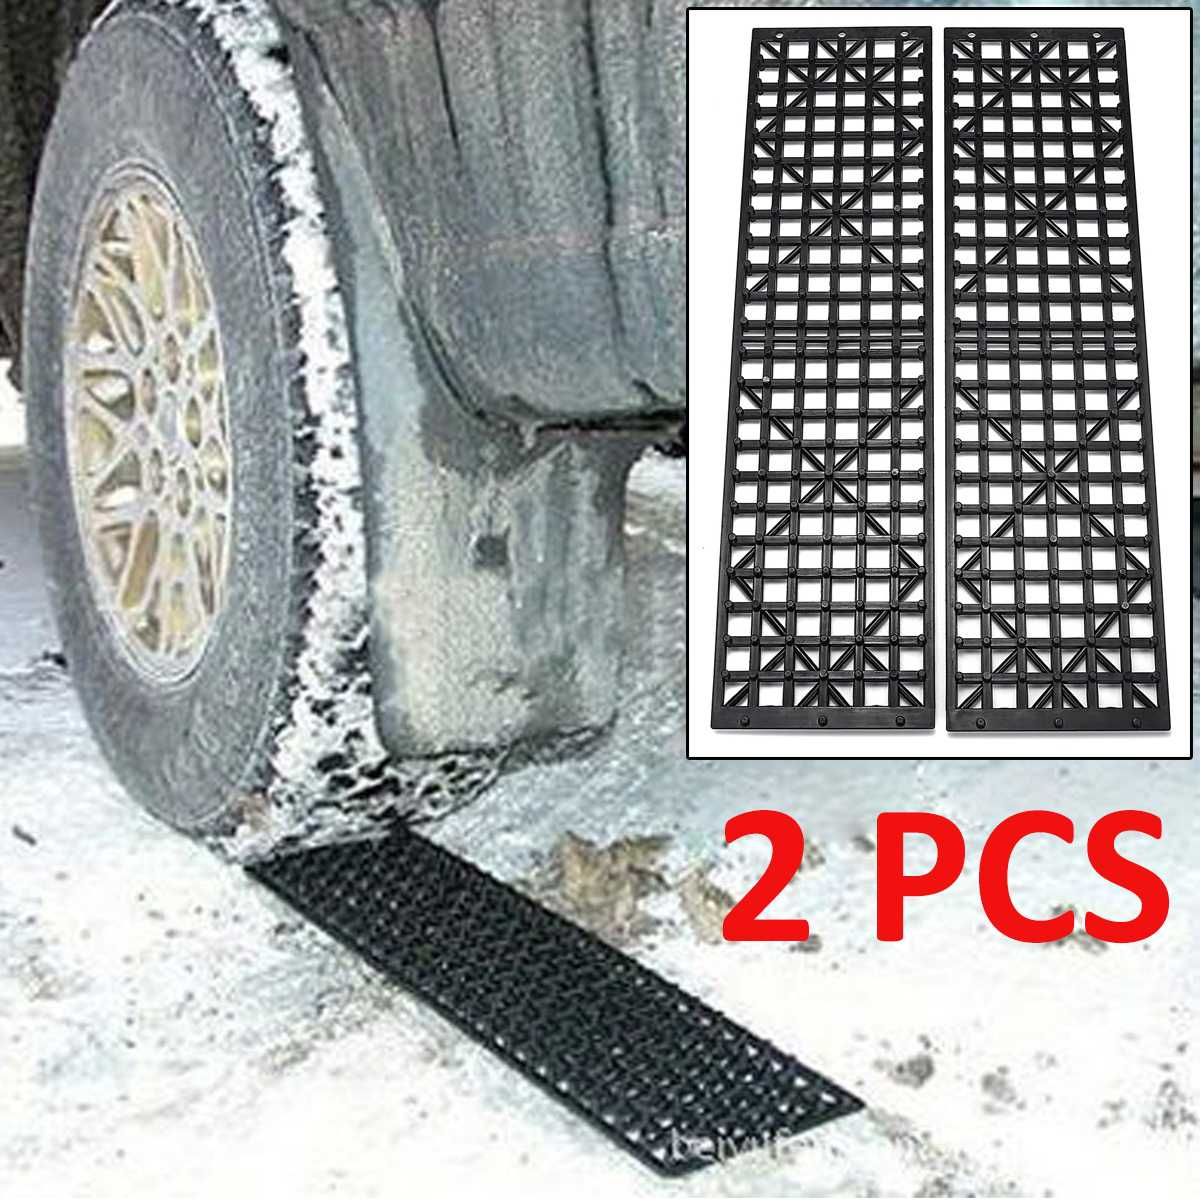 2Pcs Car Snow Ice Mud Road Clearer Auto Vehicle Truck Winter Snow Chains Tires Recovery Traction Mat Wheel Strap Tracks